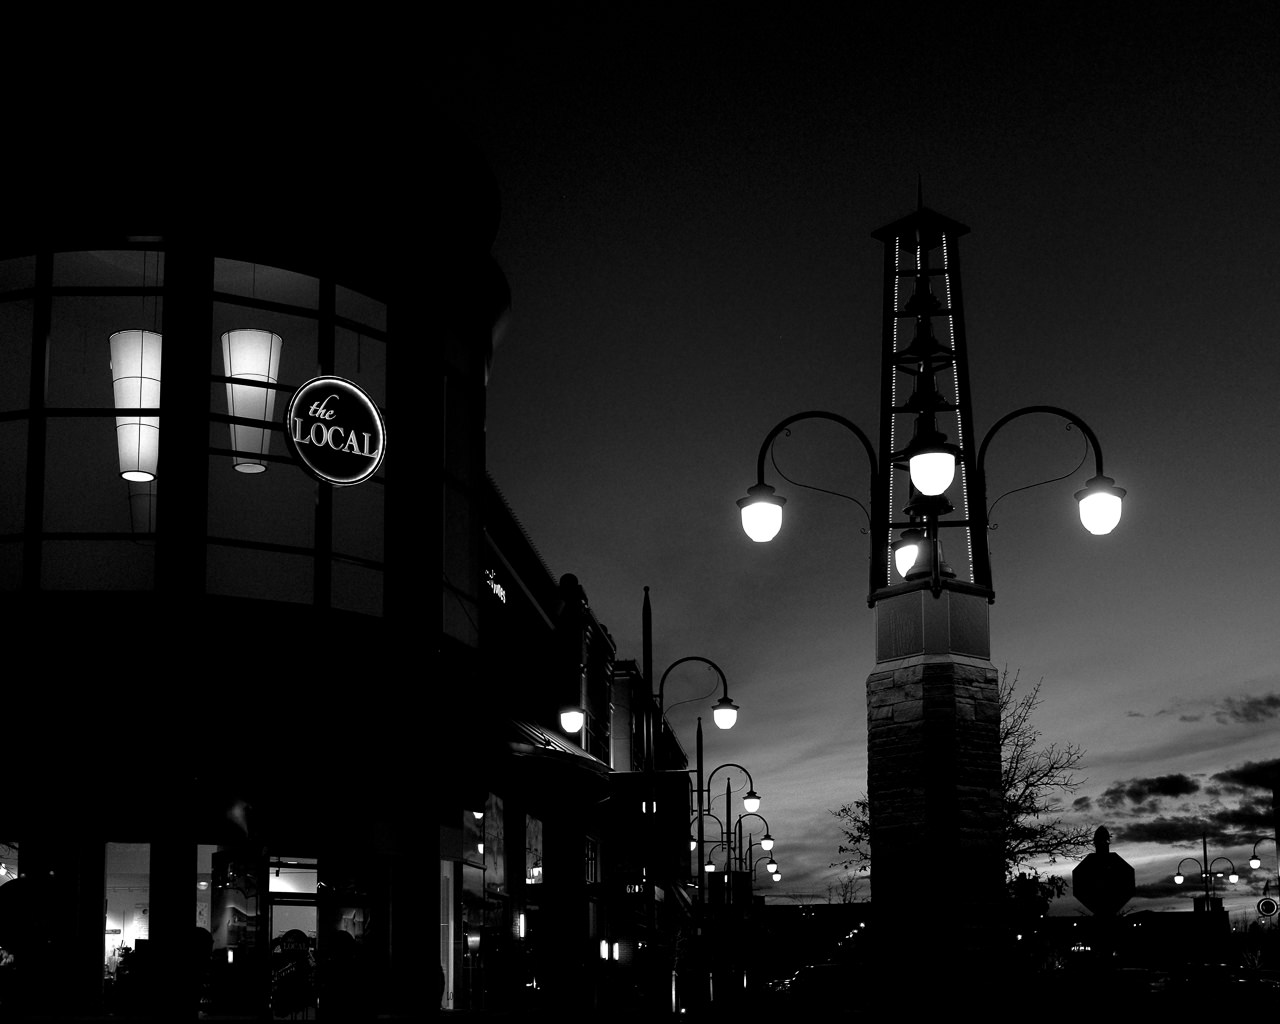 Day 97- 365 Day B&W Photo Challenge - The street lights of Southlands illuminate as the last light of sunset fade from the evening sky - Fuji X100F, Acros R Film Simulation